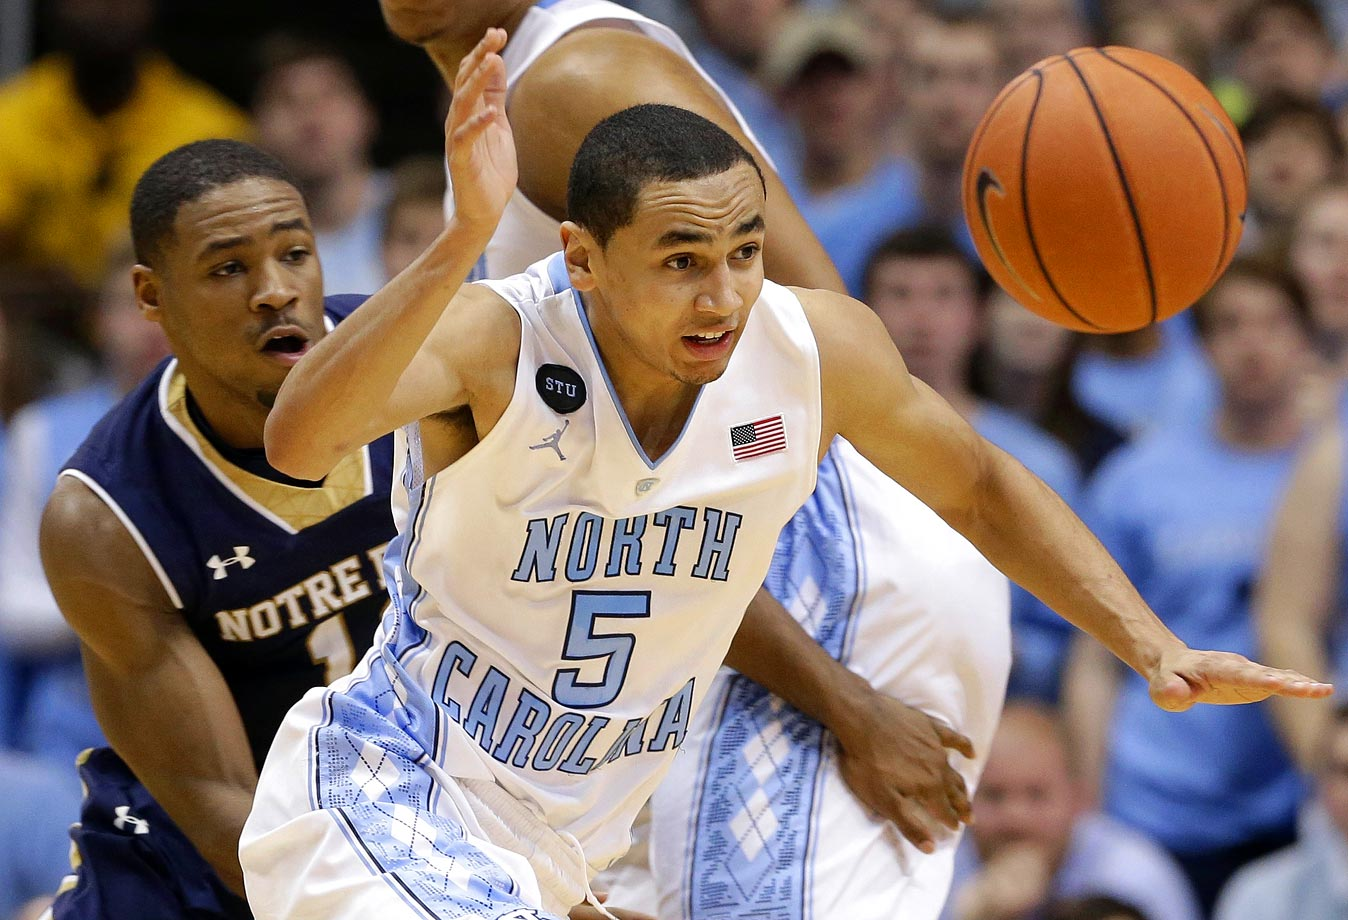 Marcus Paige and the Tar Heels wear STU patches on their uniforms in memory of Stuart Scott during their game against Notre Dame at Dean Smith Center on Jan. 5, 2015 in Chapel Hill, N.C.